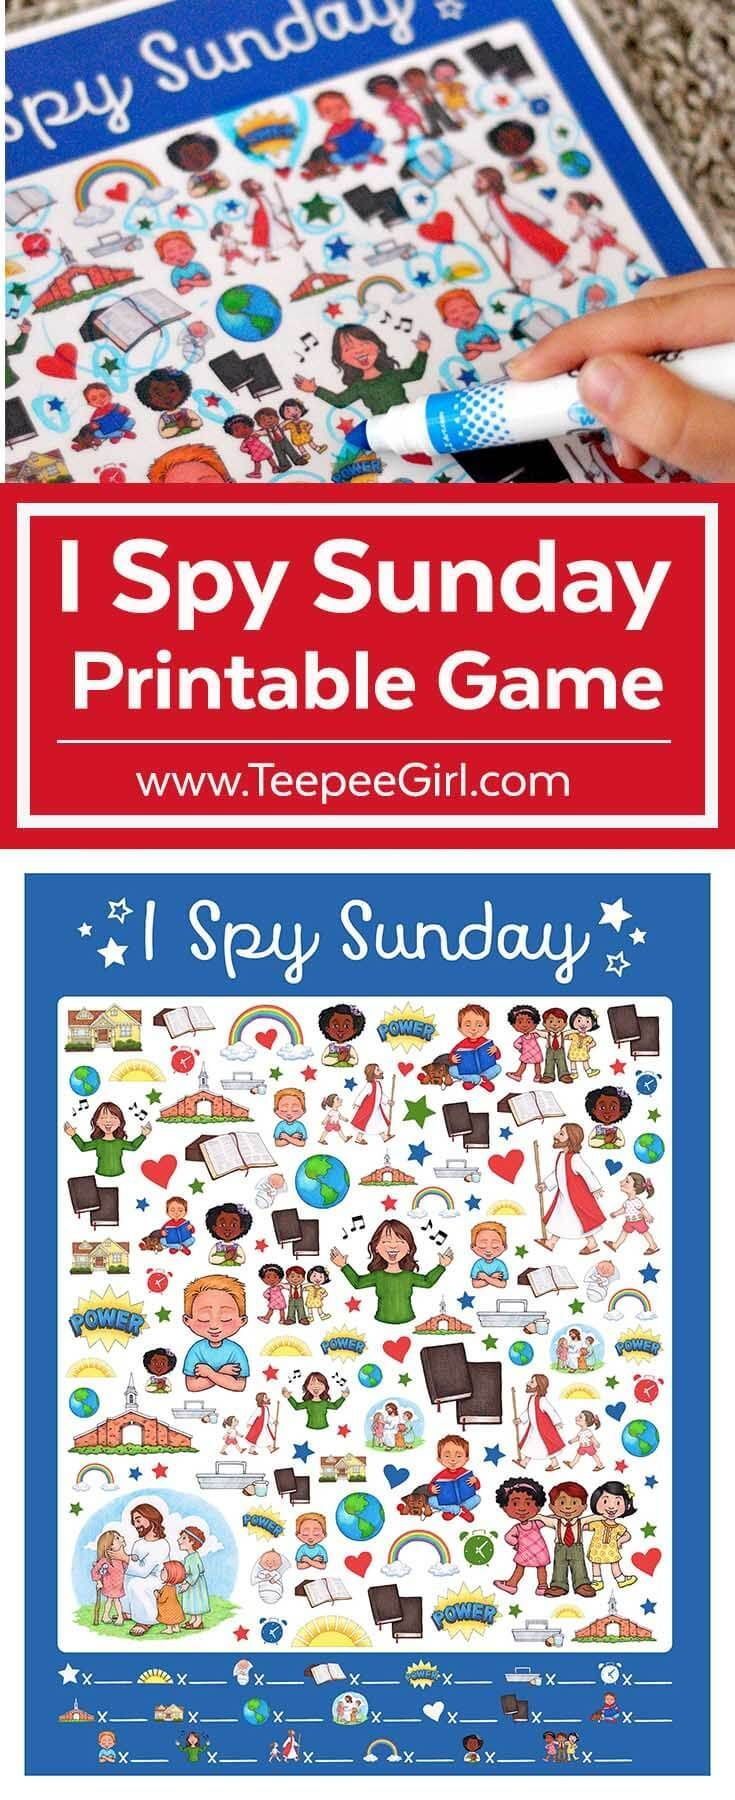 Free I Spy Sunday Printable Game | Christian Crafts | Pinterest | Sunday school, School and Family home evening